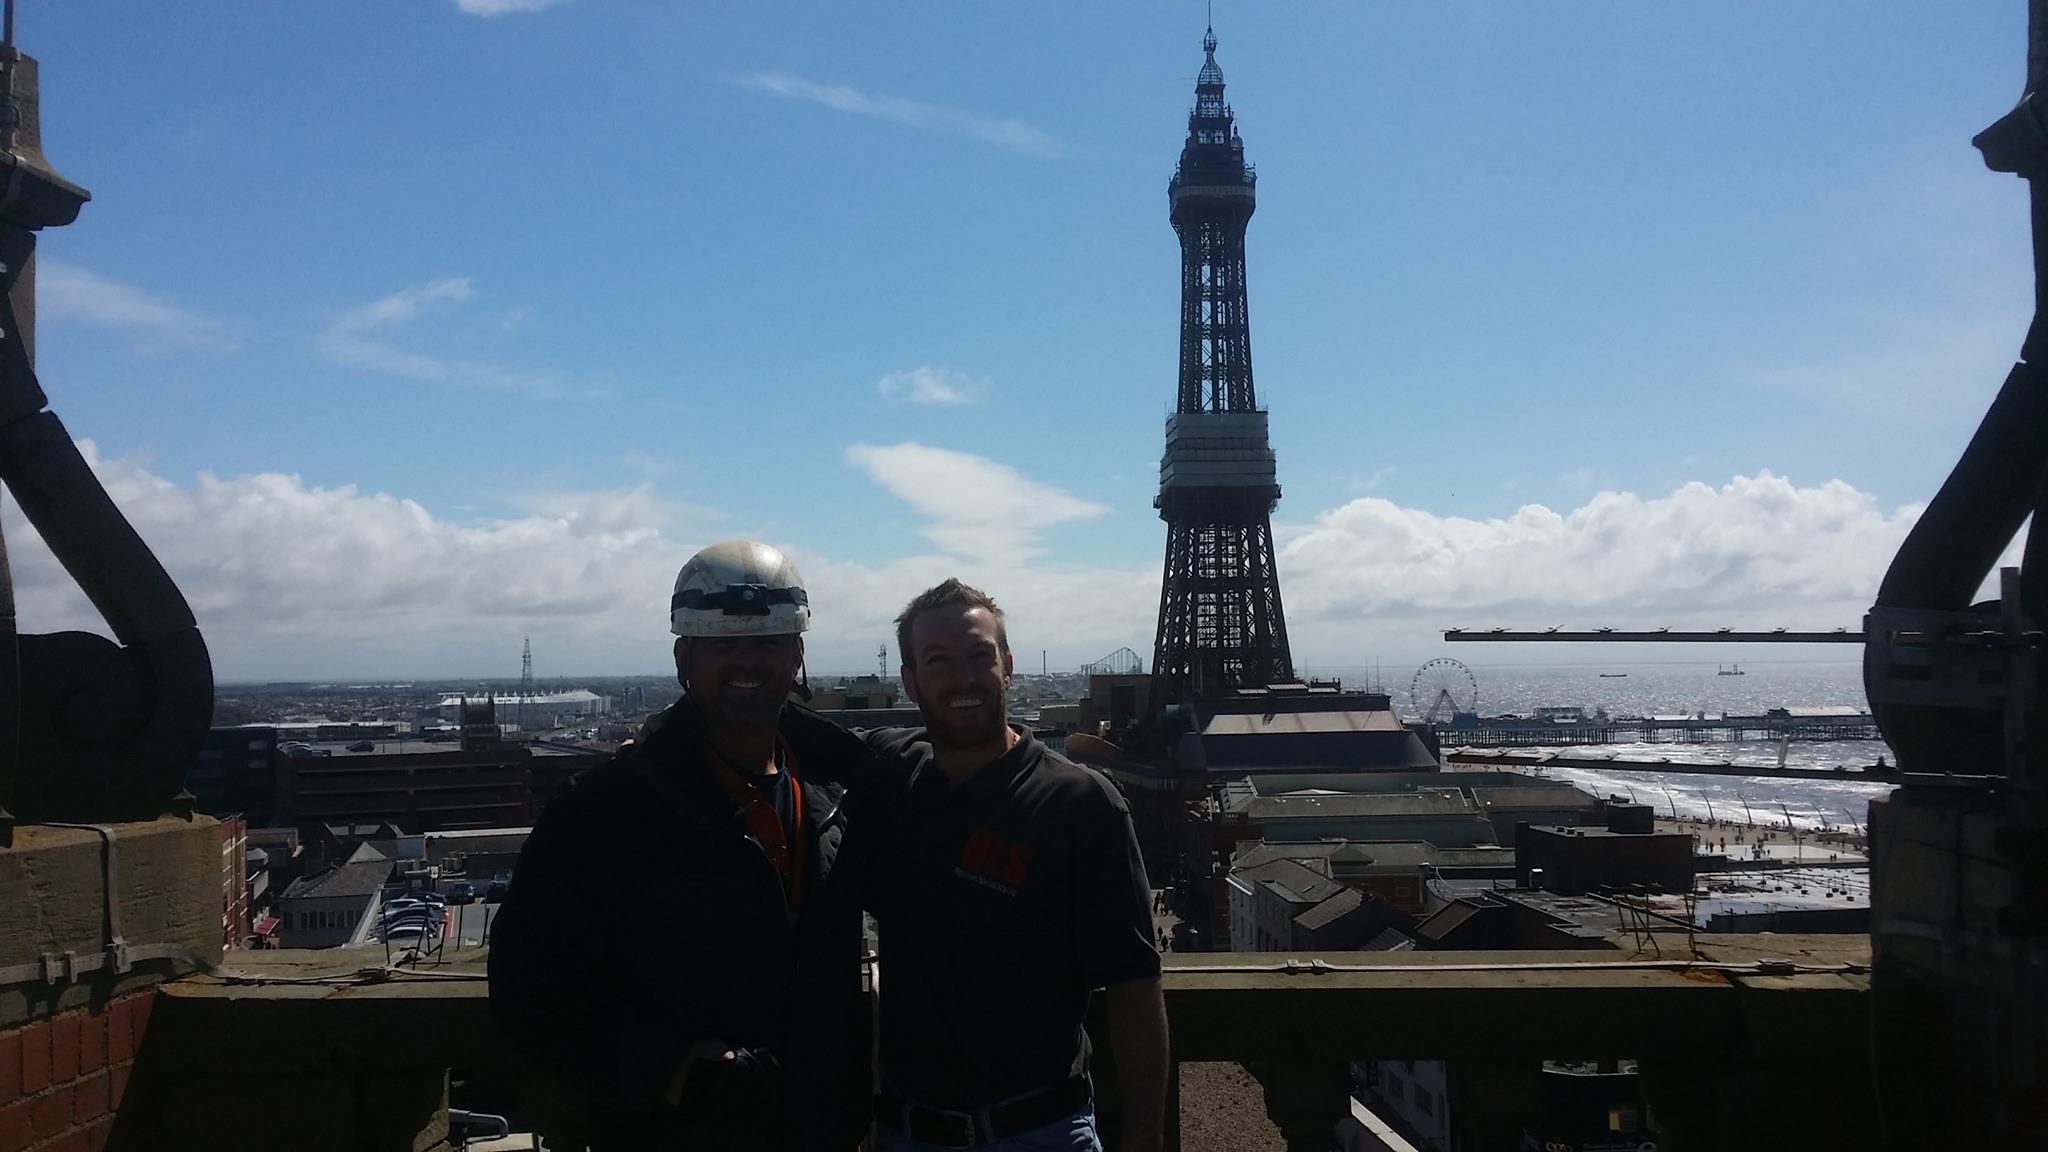 two rope access technicians from High Level Specialists stand on top of Blackpool Council's Town Hall for a photo with Blackpool Tower, Pleasure Beach and the Big Wheel in the background